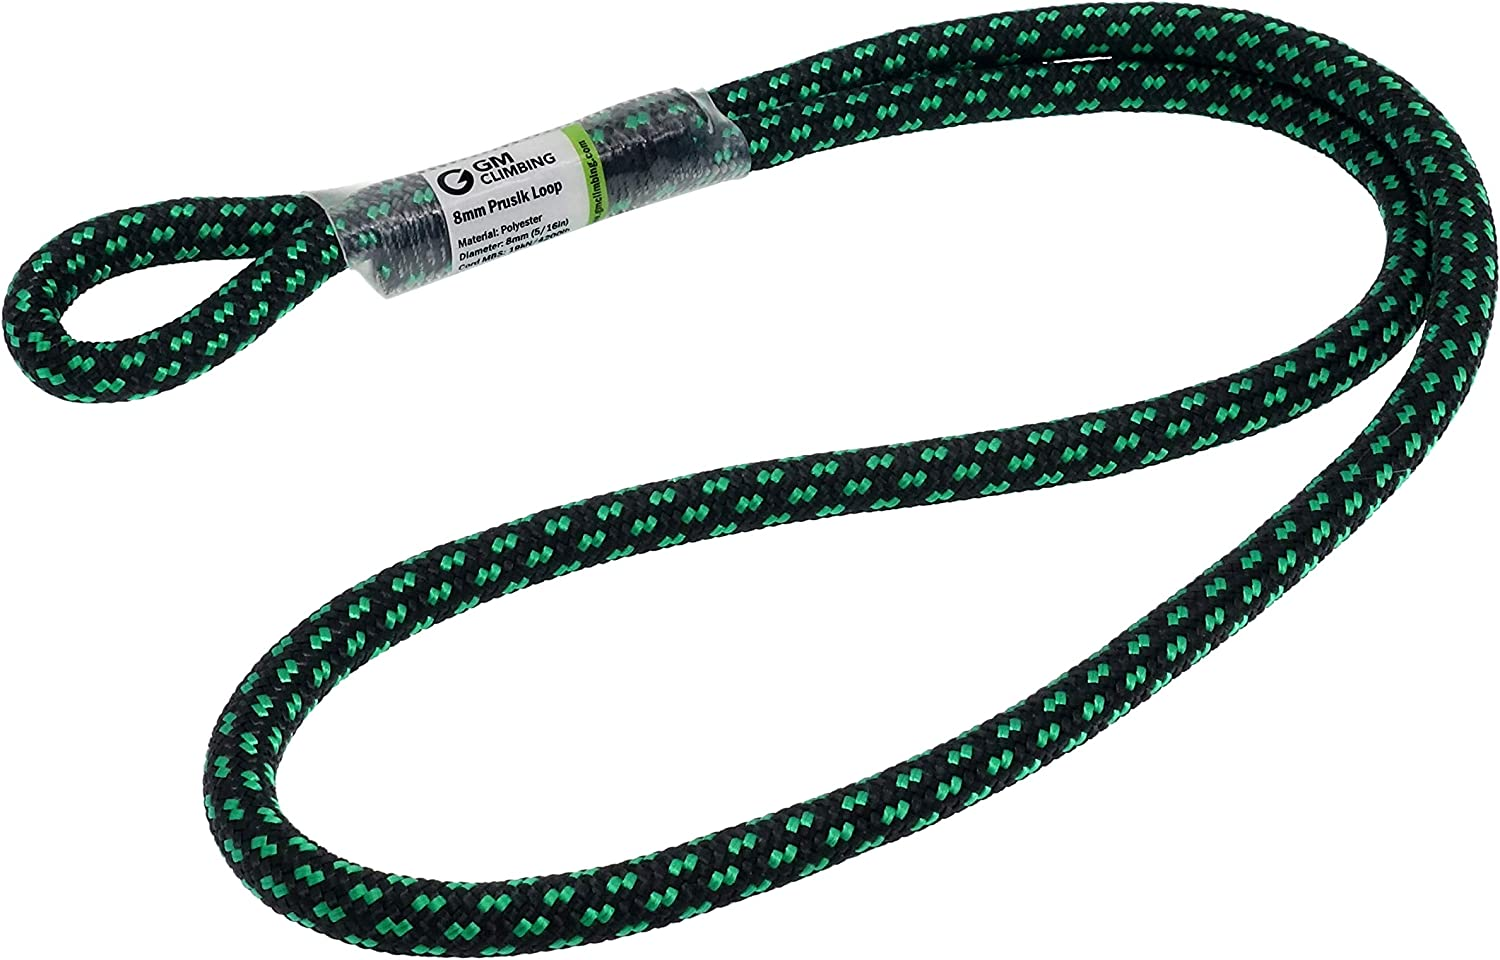 "GM CLIMBING 8mm (5/16"") Prusik Loop Pre-Sewn 18 inches : Sports & Outdoors"